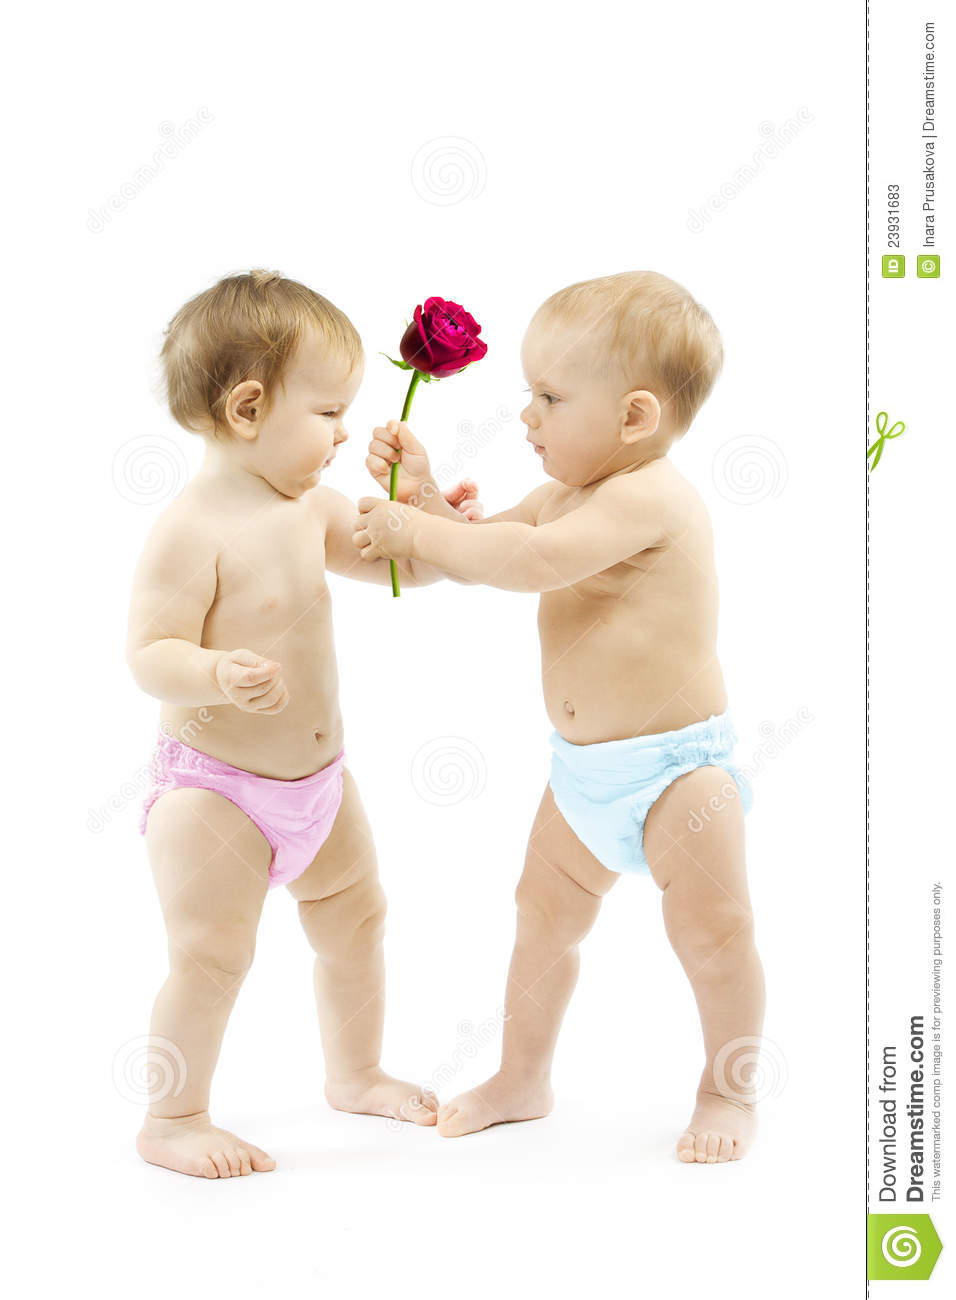 baby boy present rose flower to baby girl. stock image - image of